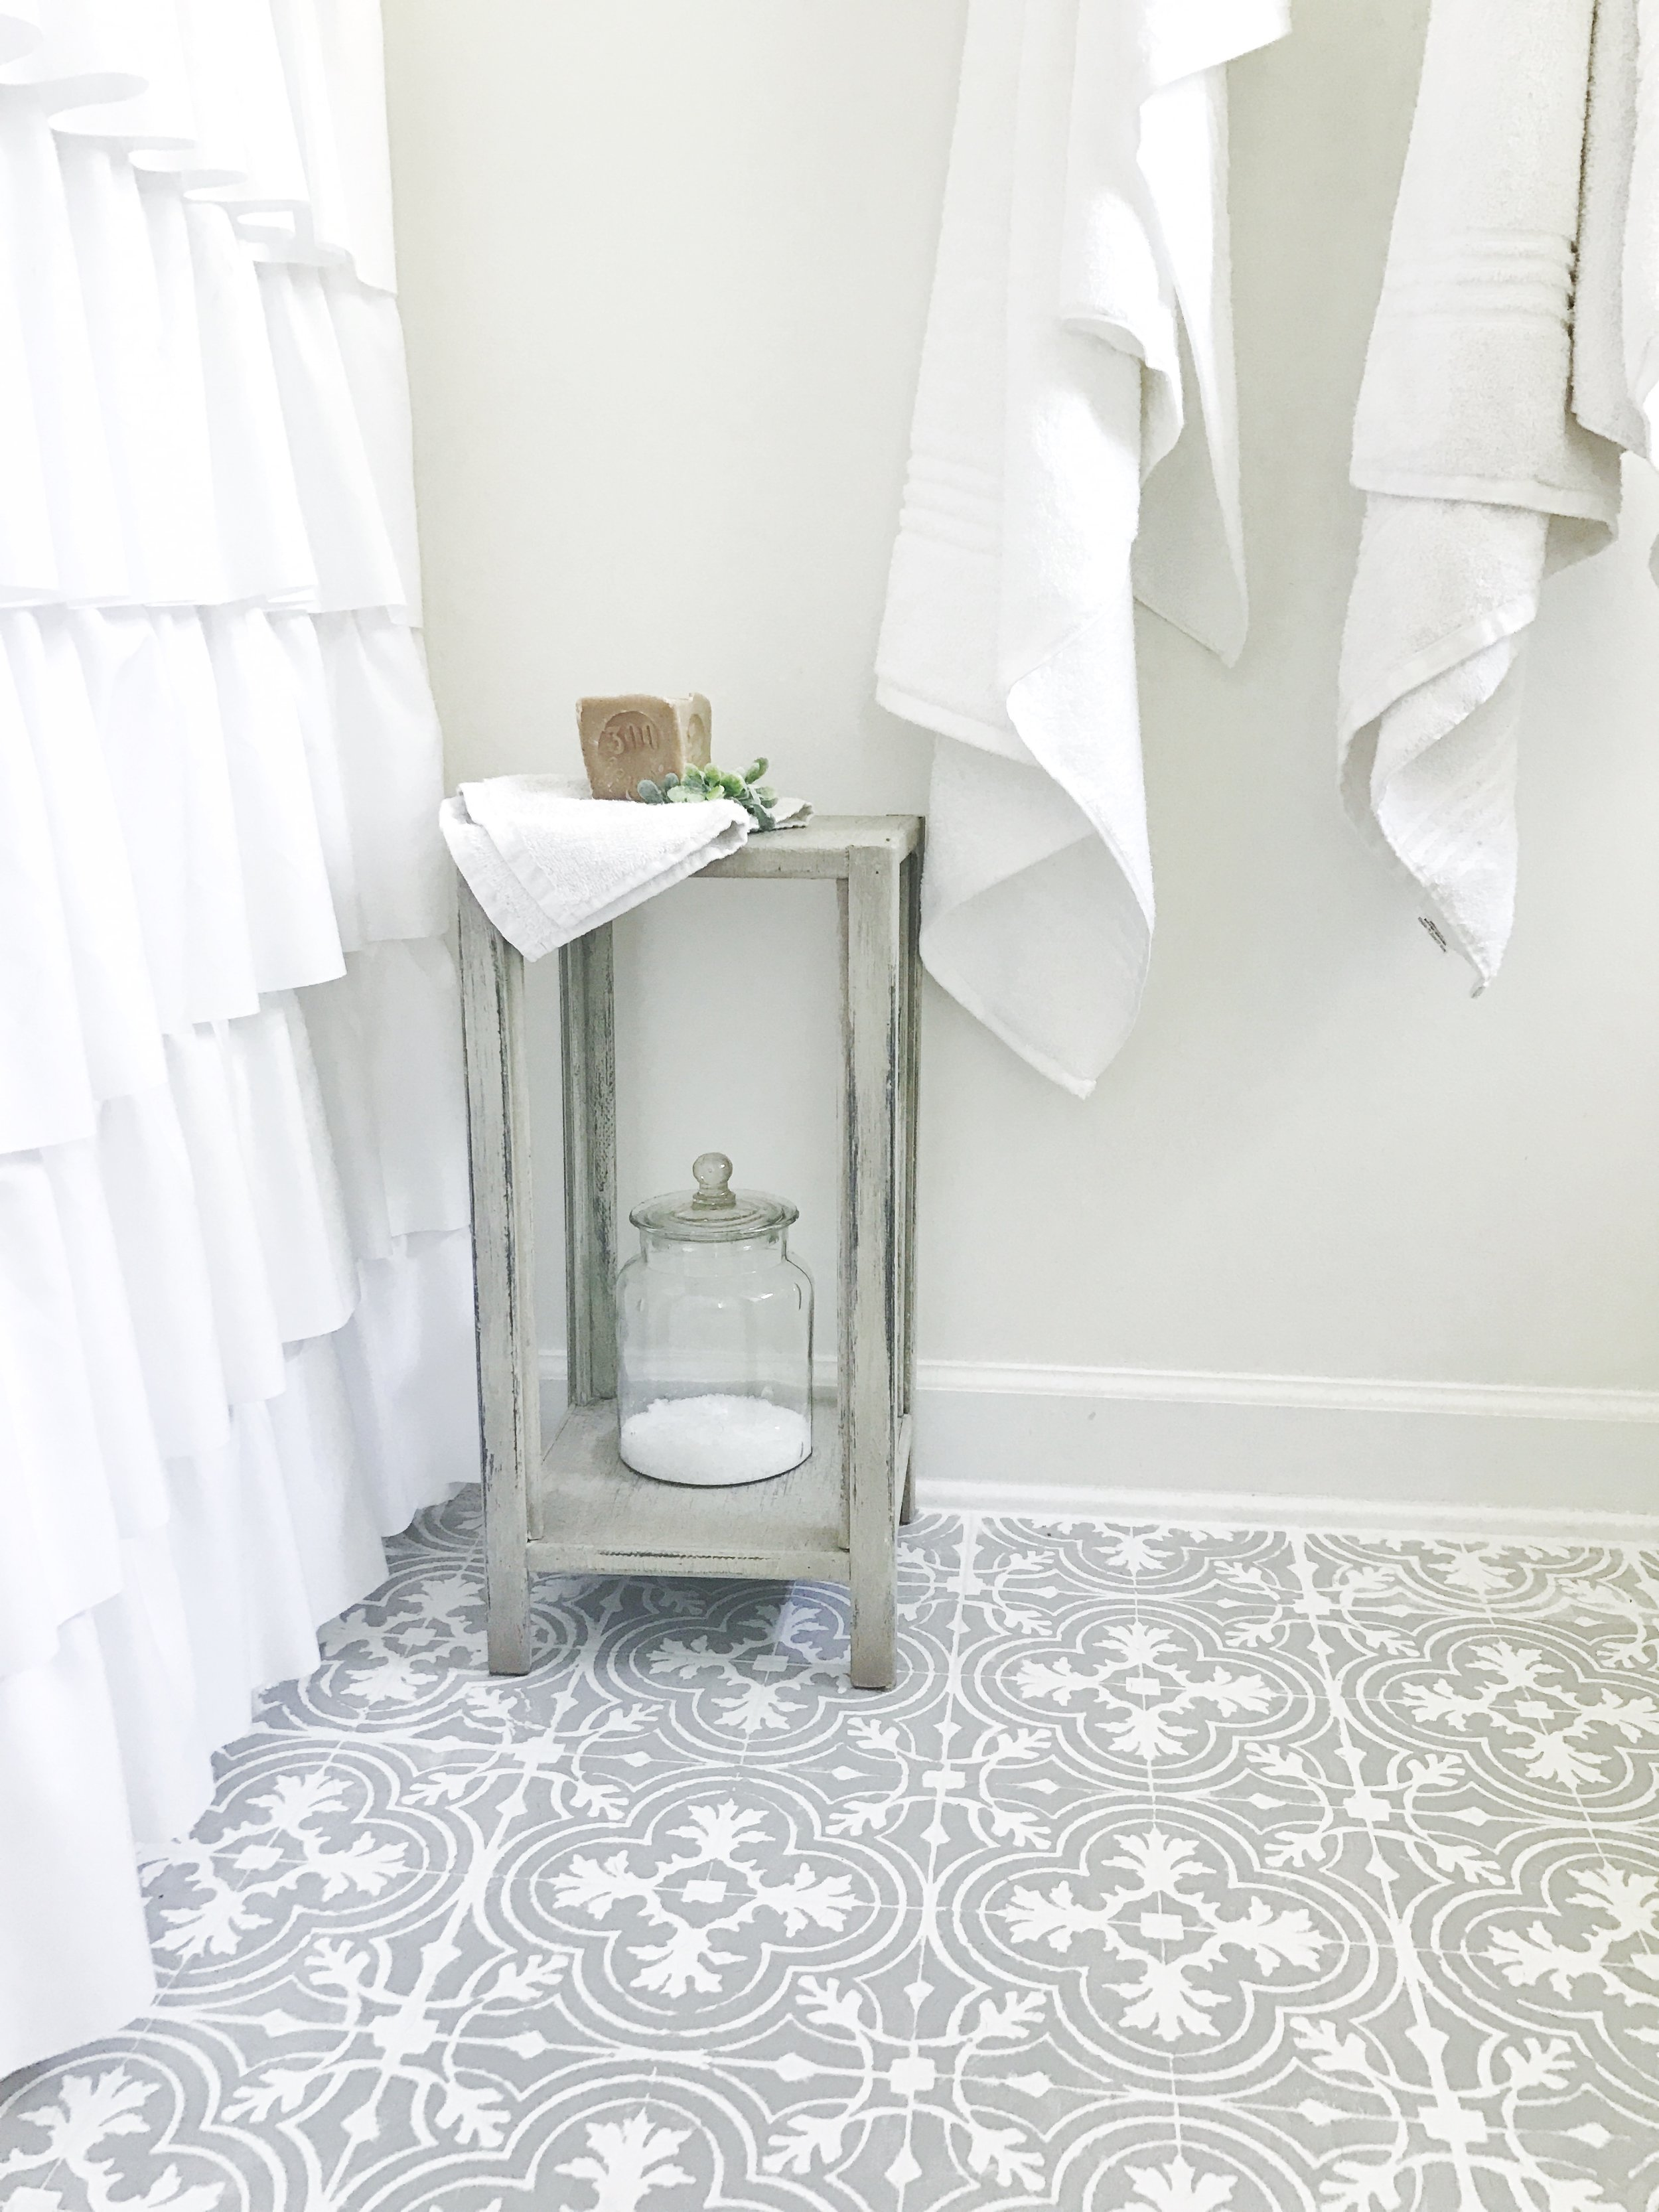 Full Farmhouse Bathroom Tour- Budget Friendly Weekend Makeover by Plum Pretty Decor and Design